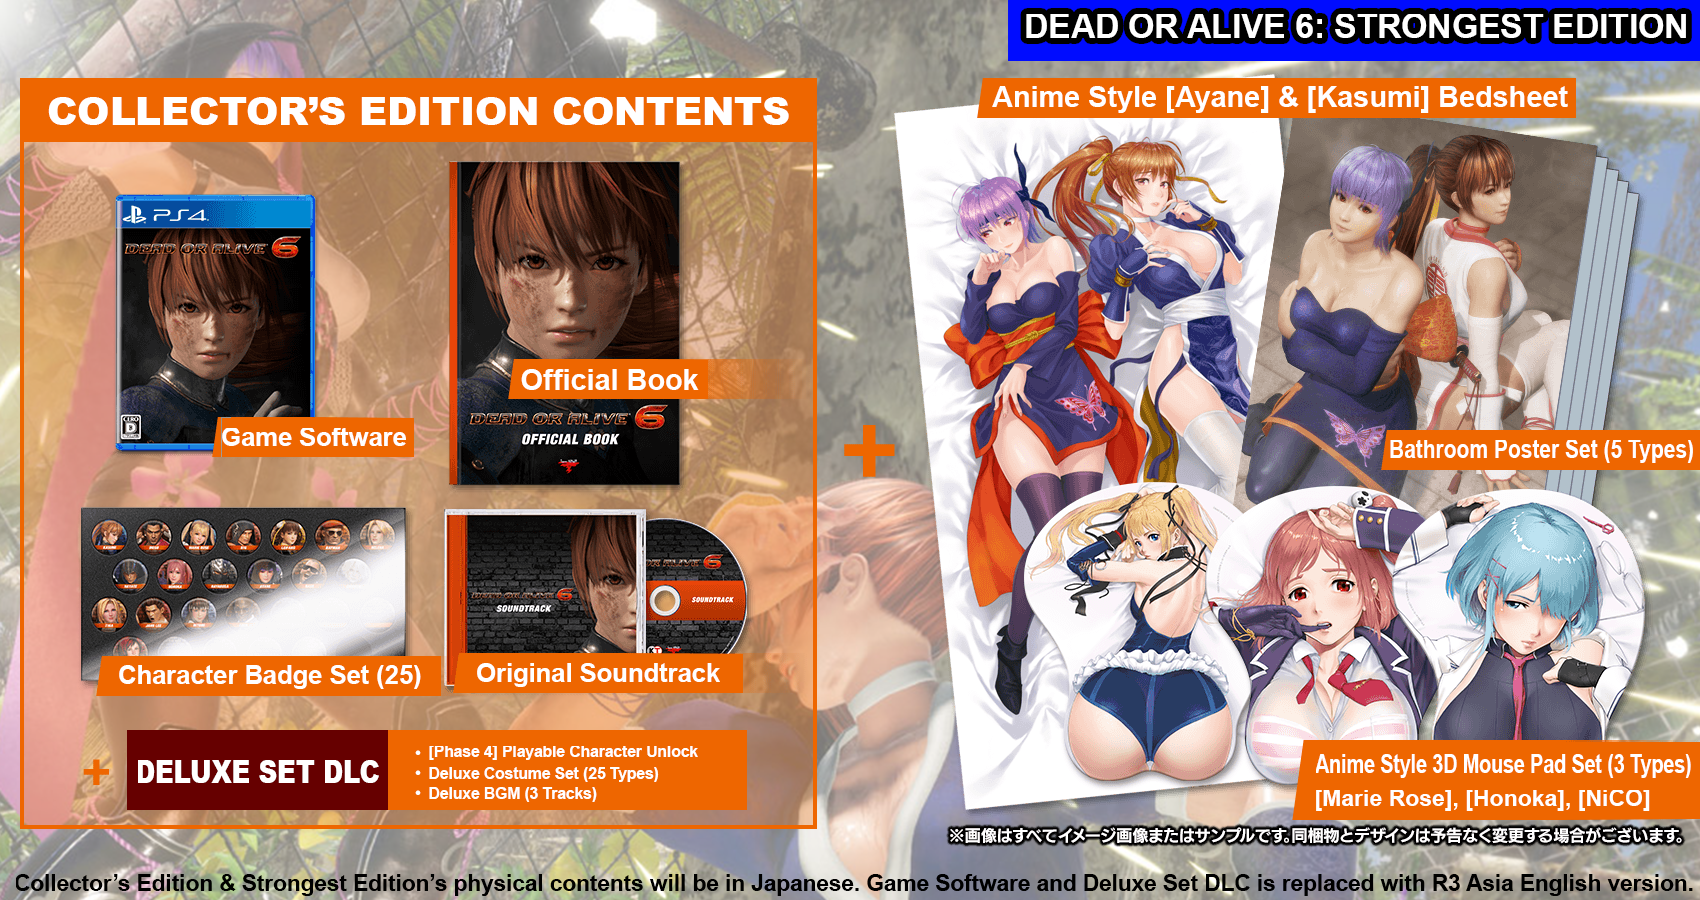 PS4 Dead Or Alive 6 (Strongest Edition) - Game Academia